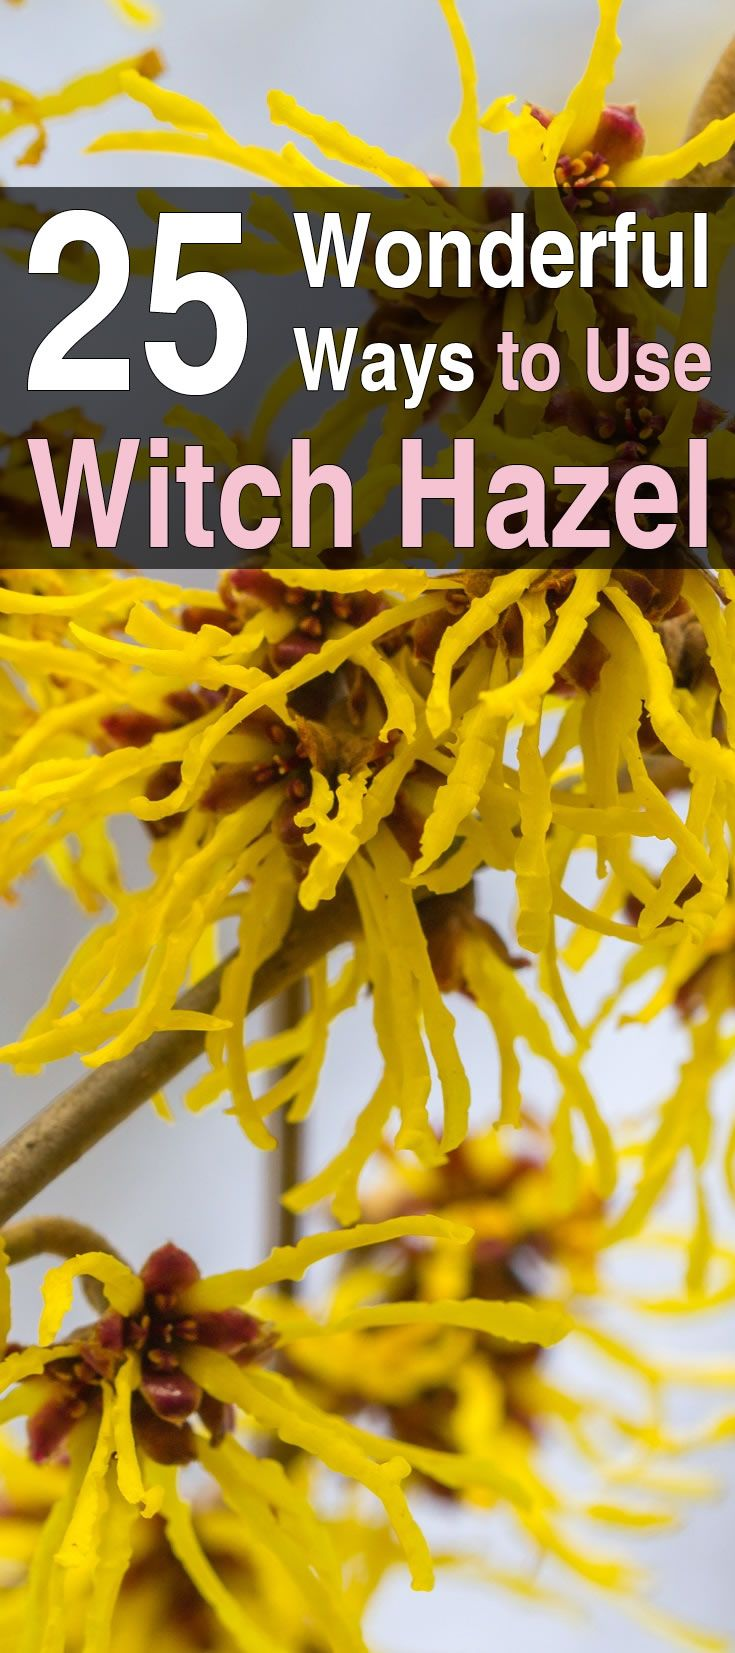 Once you realize how useful and beneficial witch hazel is, you will want to start keeping it on your shelf. Here are 25 wonderful ways to use it.